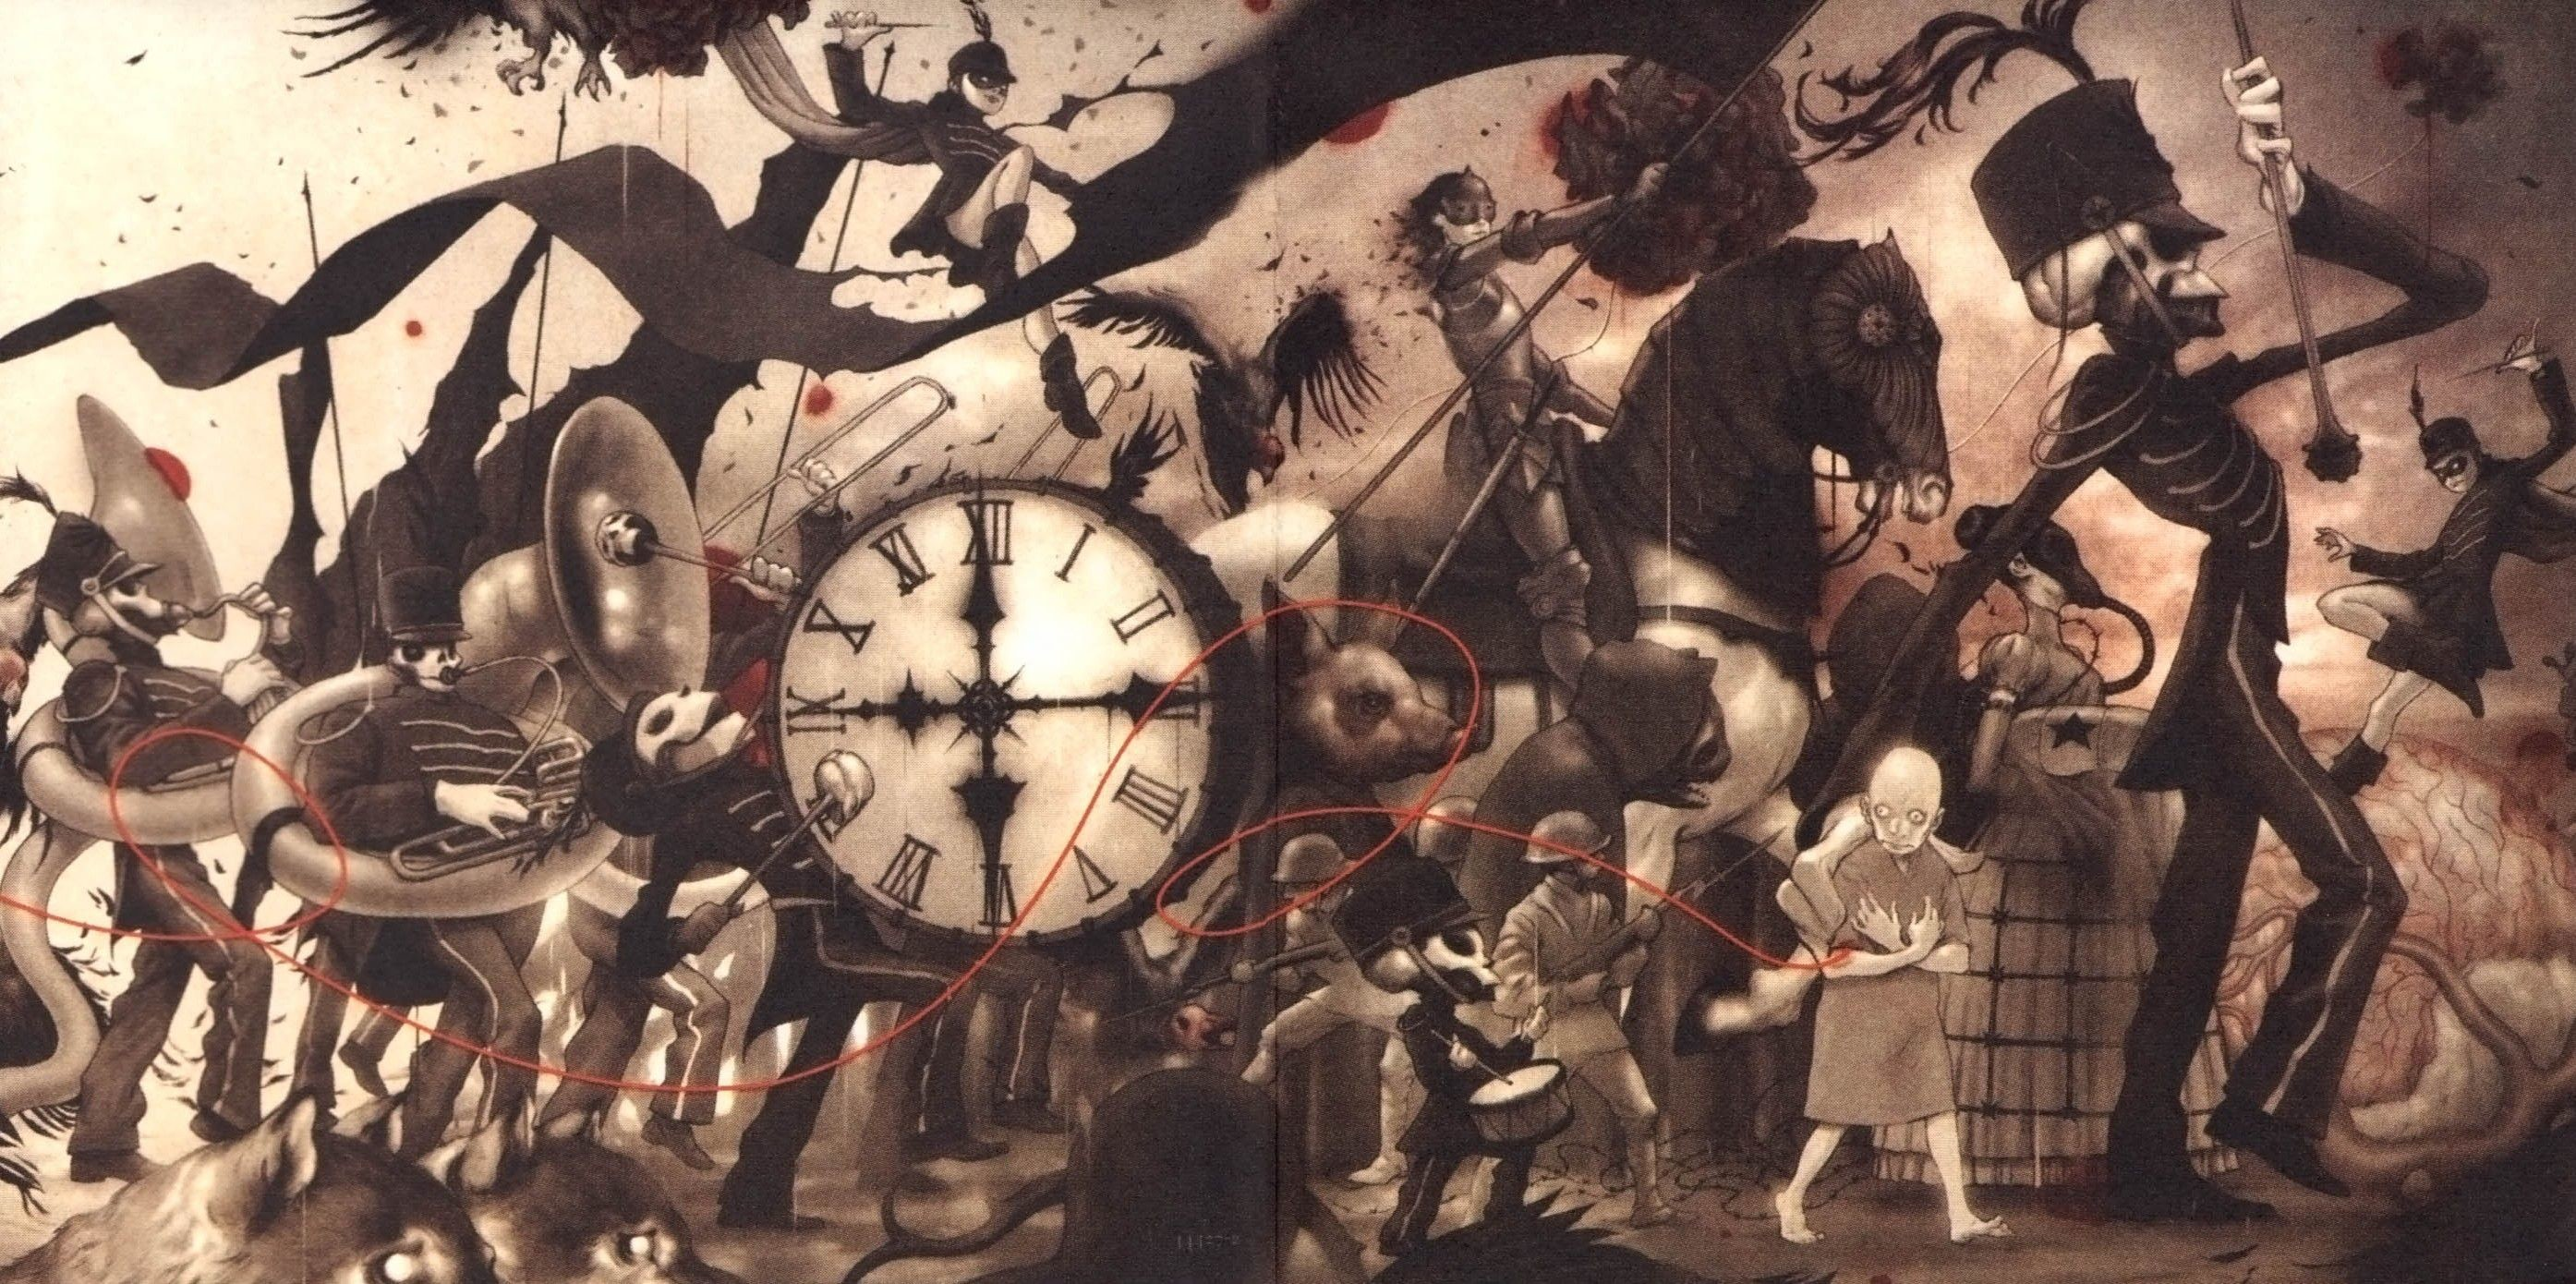 The Black Parade Wallpaper 66 images 2789x1390